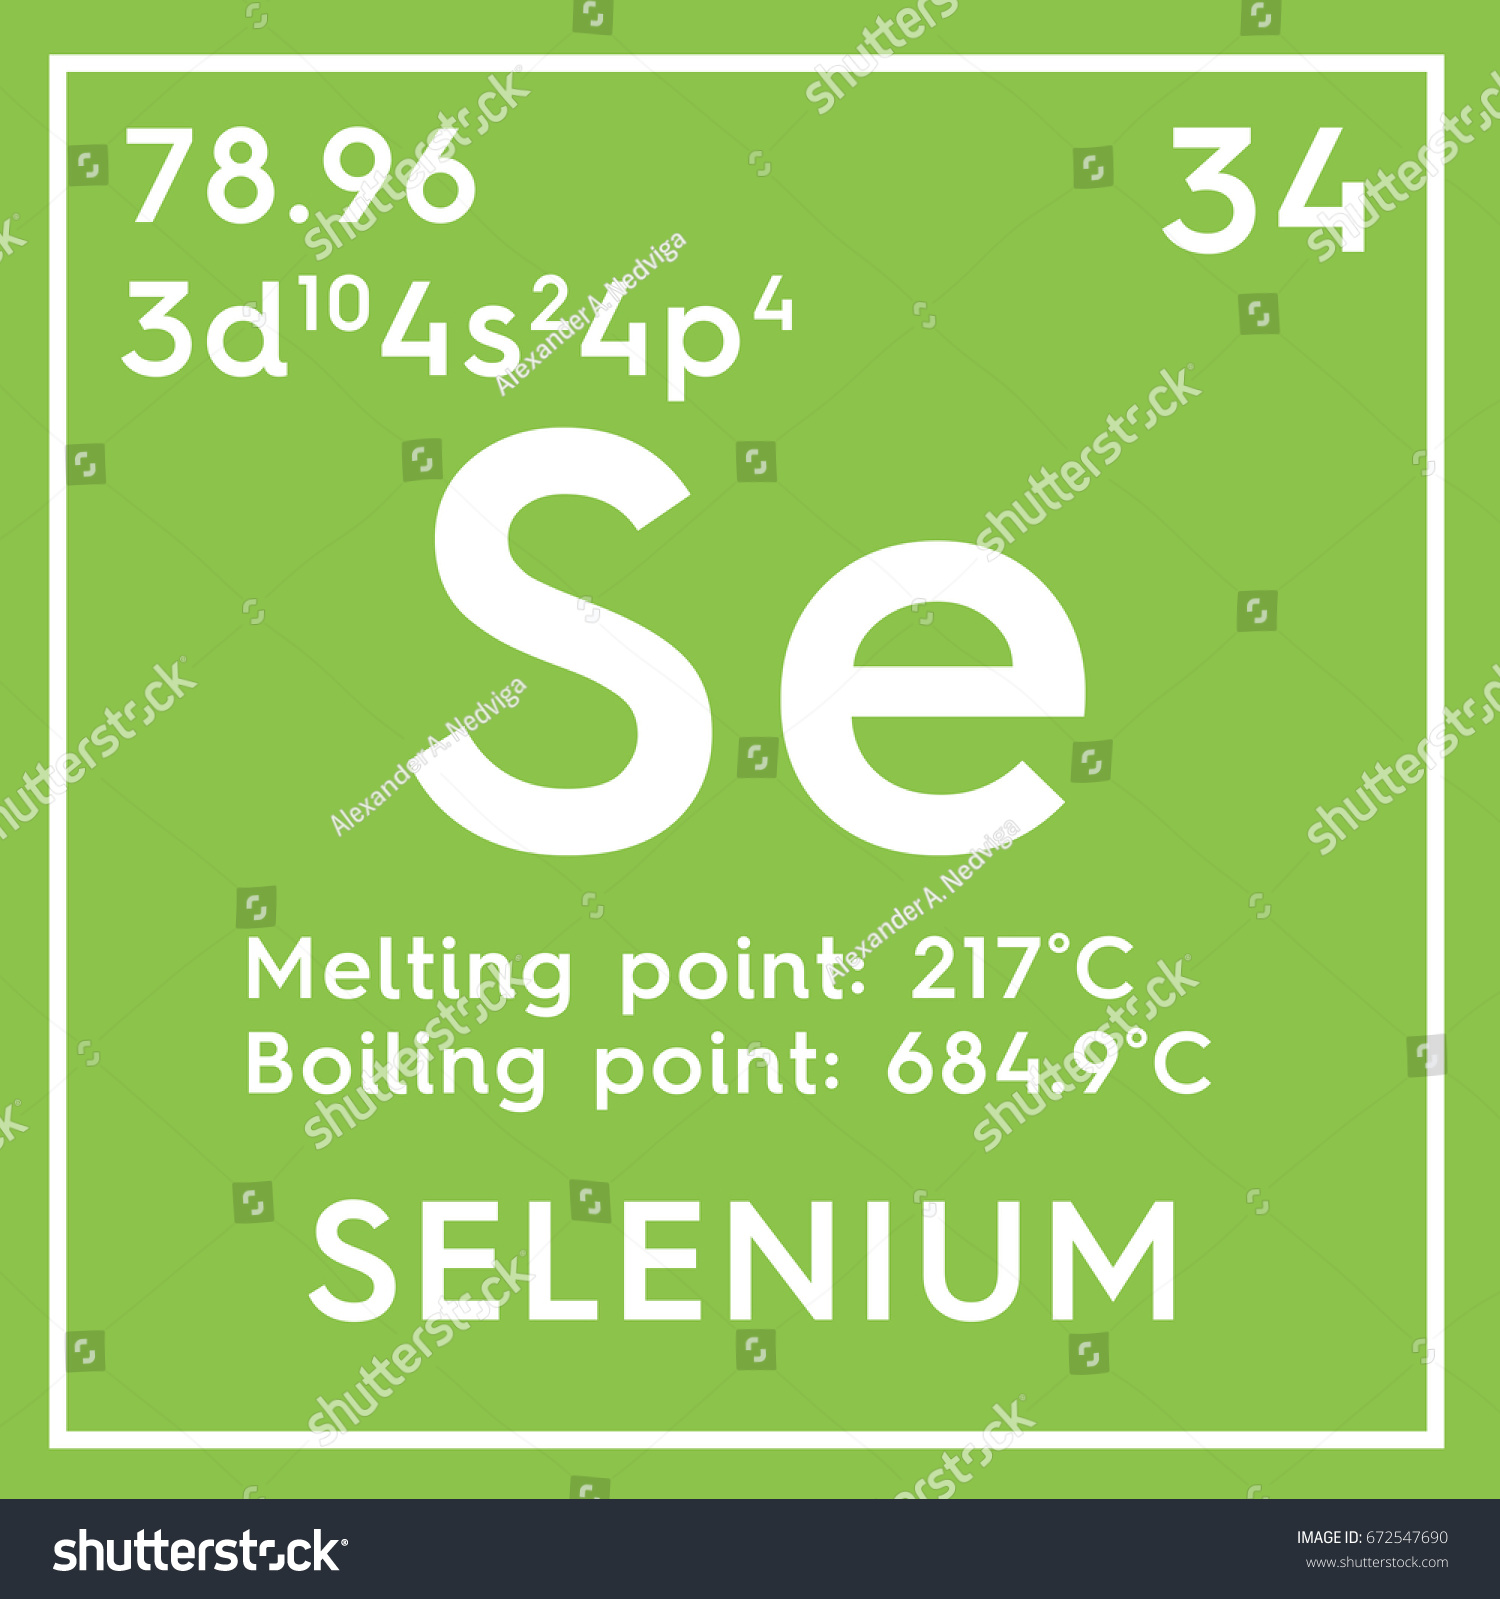 Selenium in periodic table image collections periodic table images selenium other nonmetals chemical element mendeleevs stock selenium other nonmetals chemical element of mendeleevs periodic table gamestrikefo Images